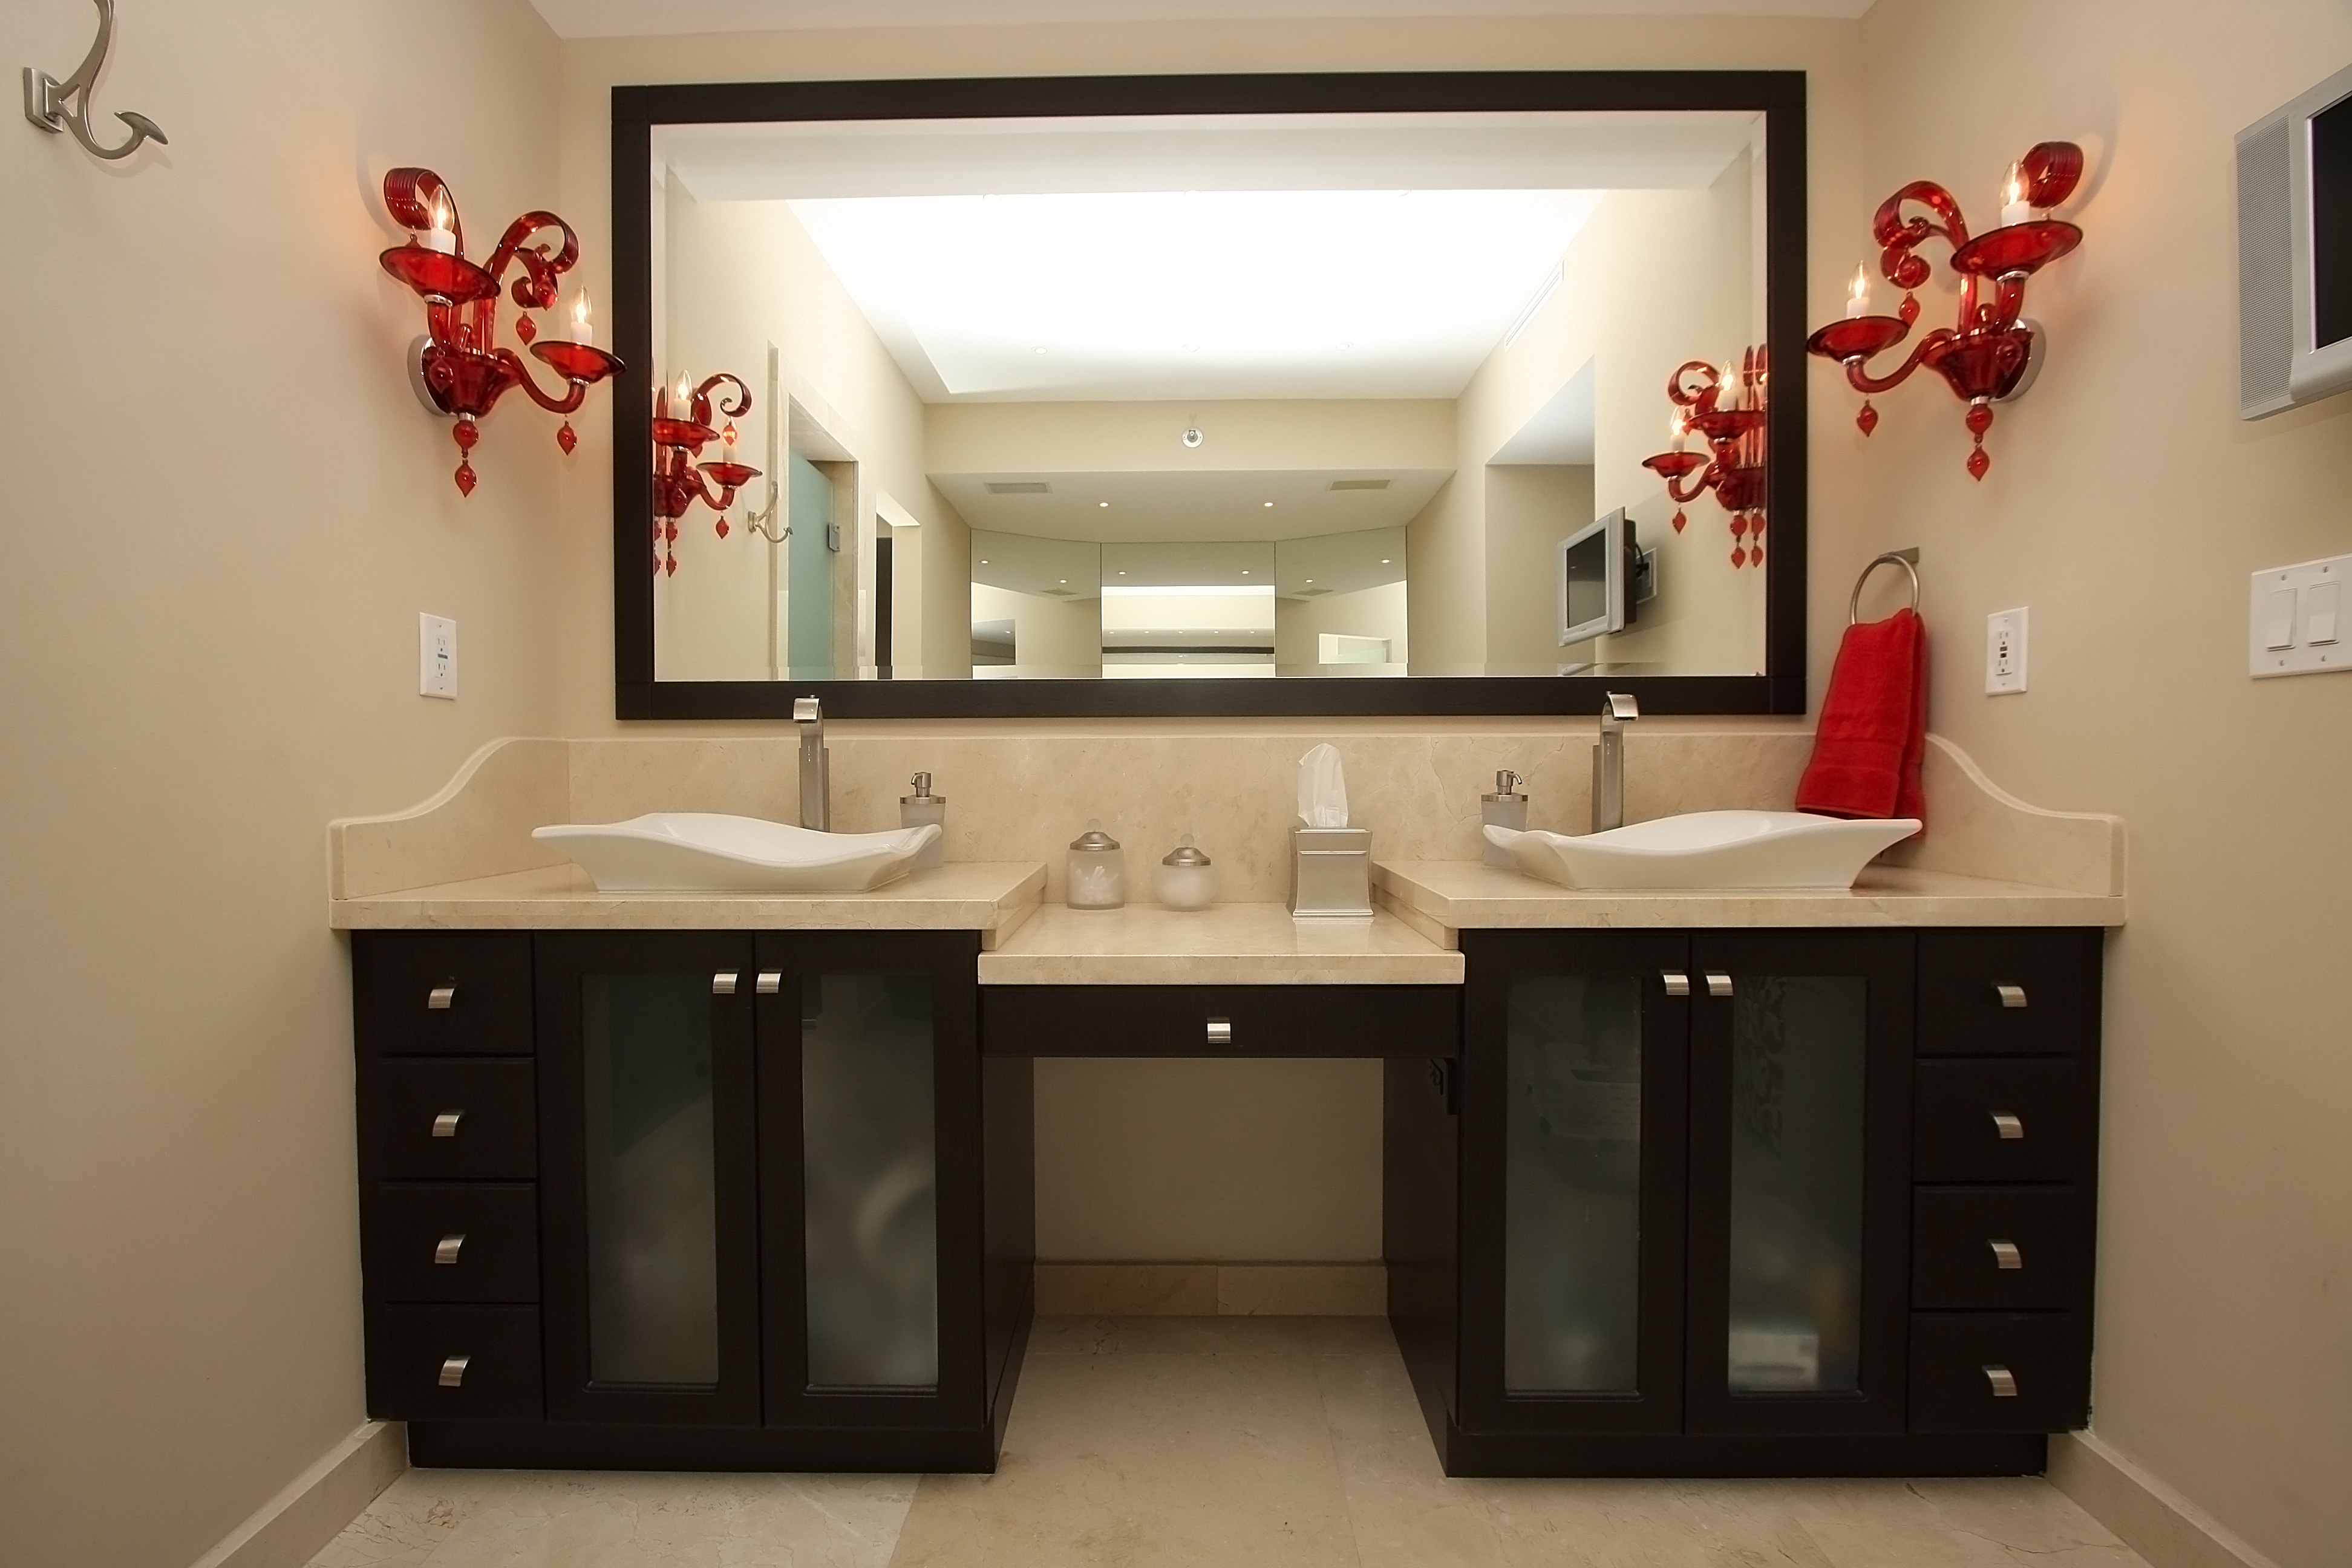 Organizing your Bathroom Cabinets and Countertops